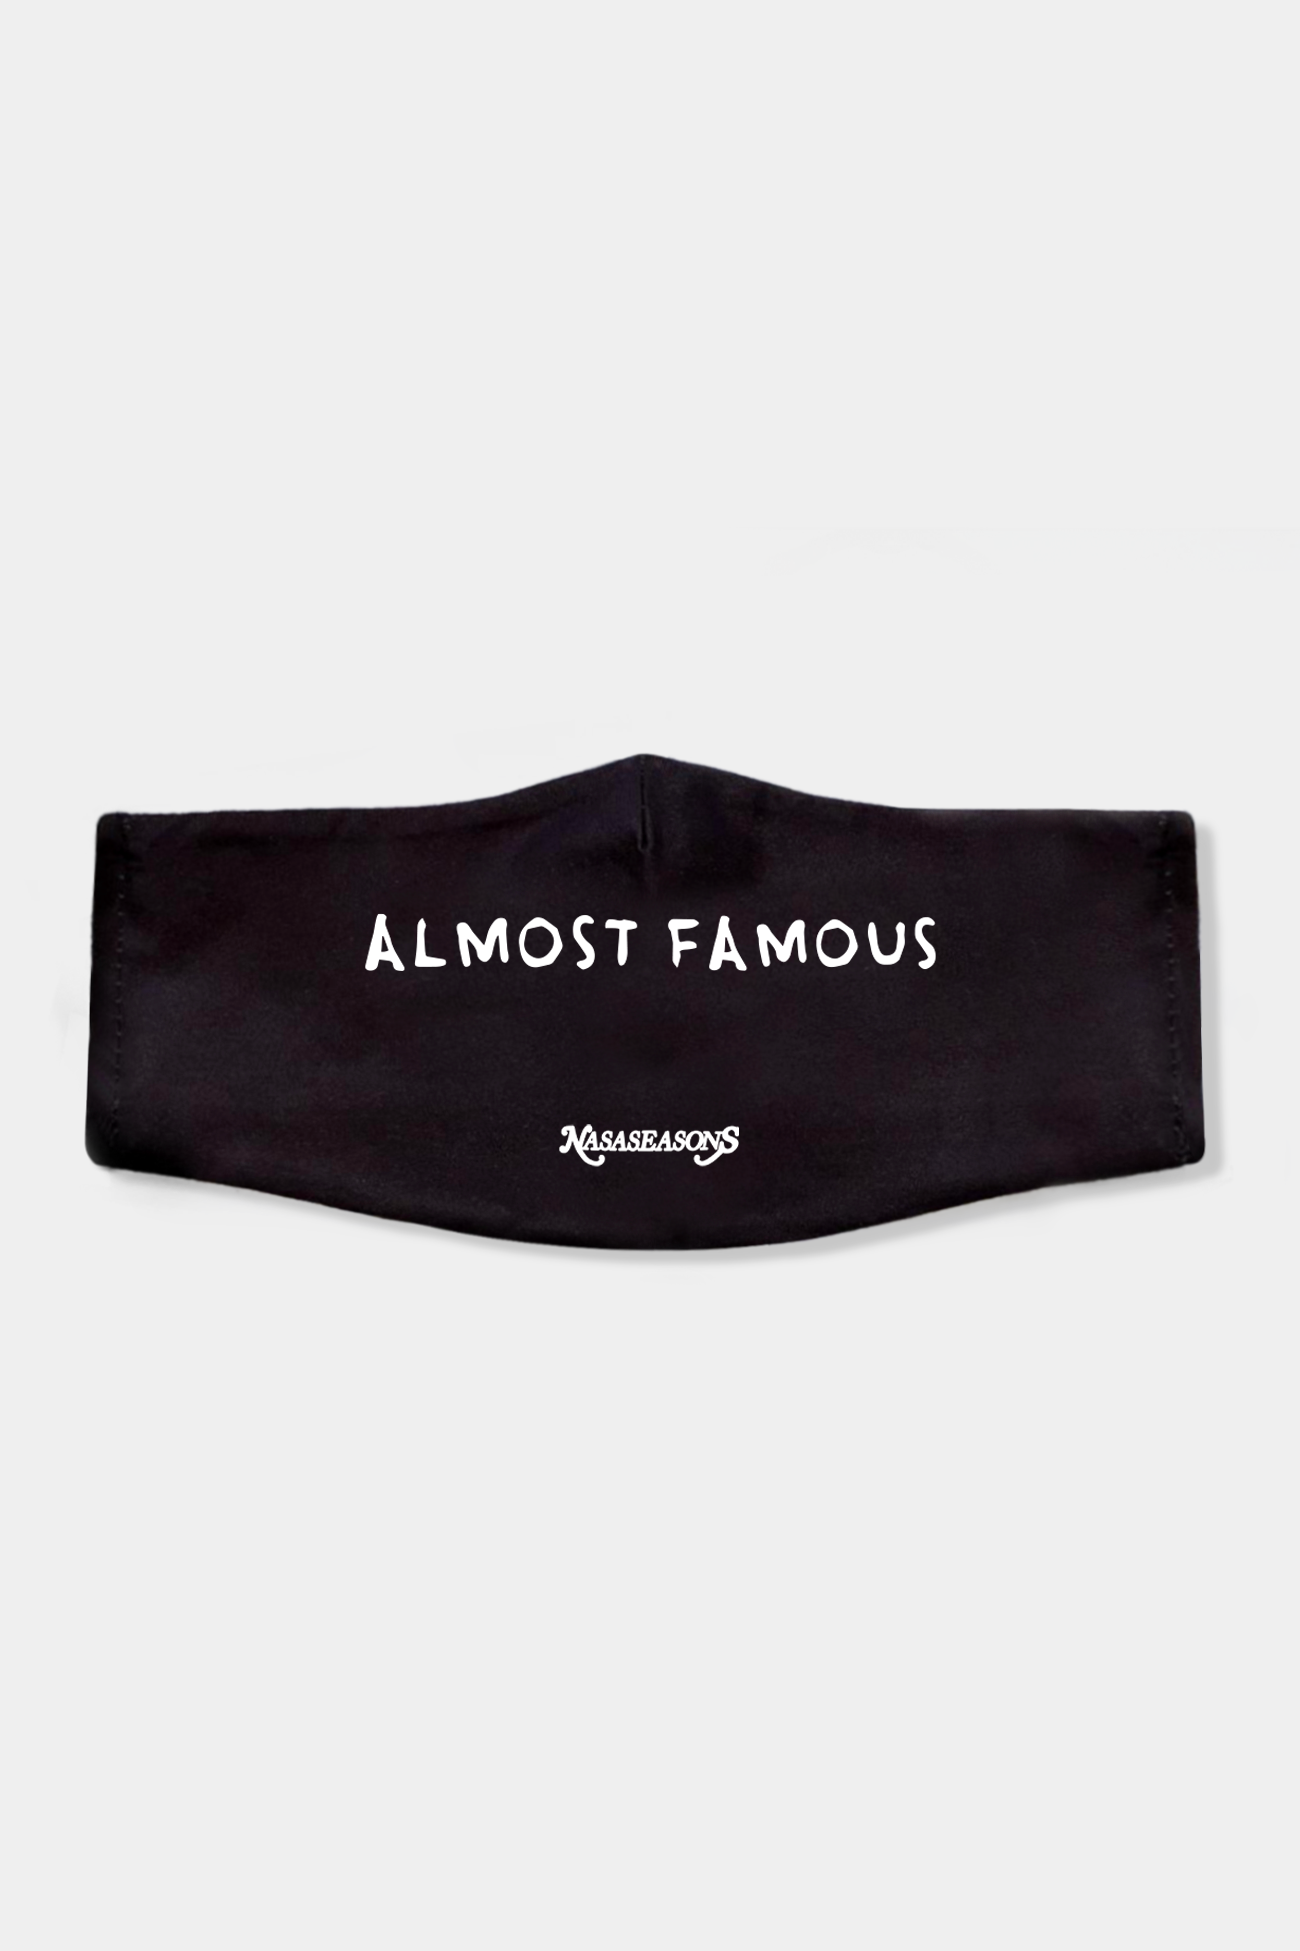 ALMOST FAMOUS FACE MASK